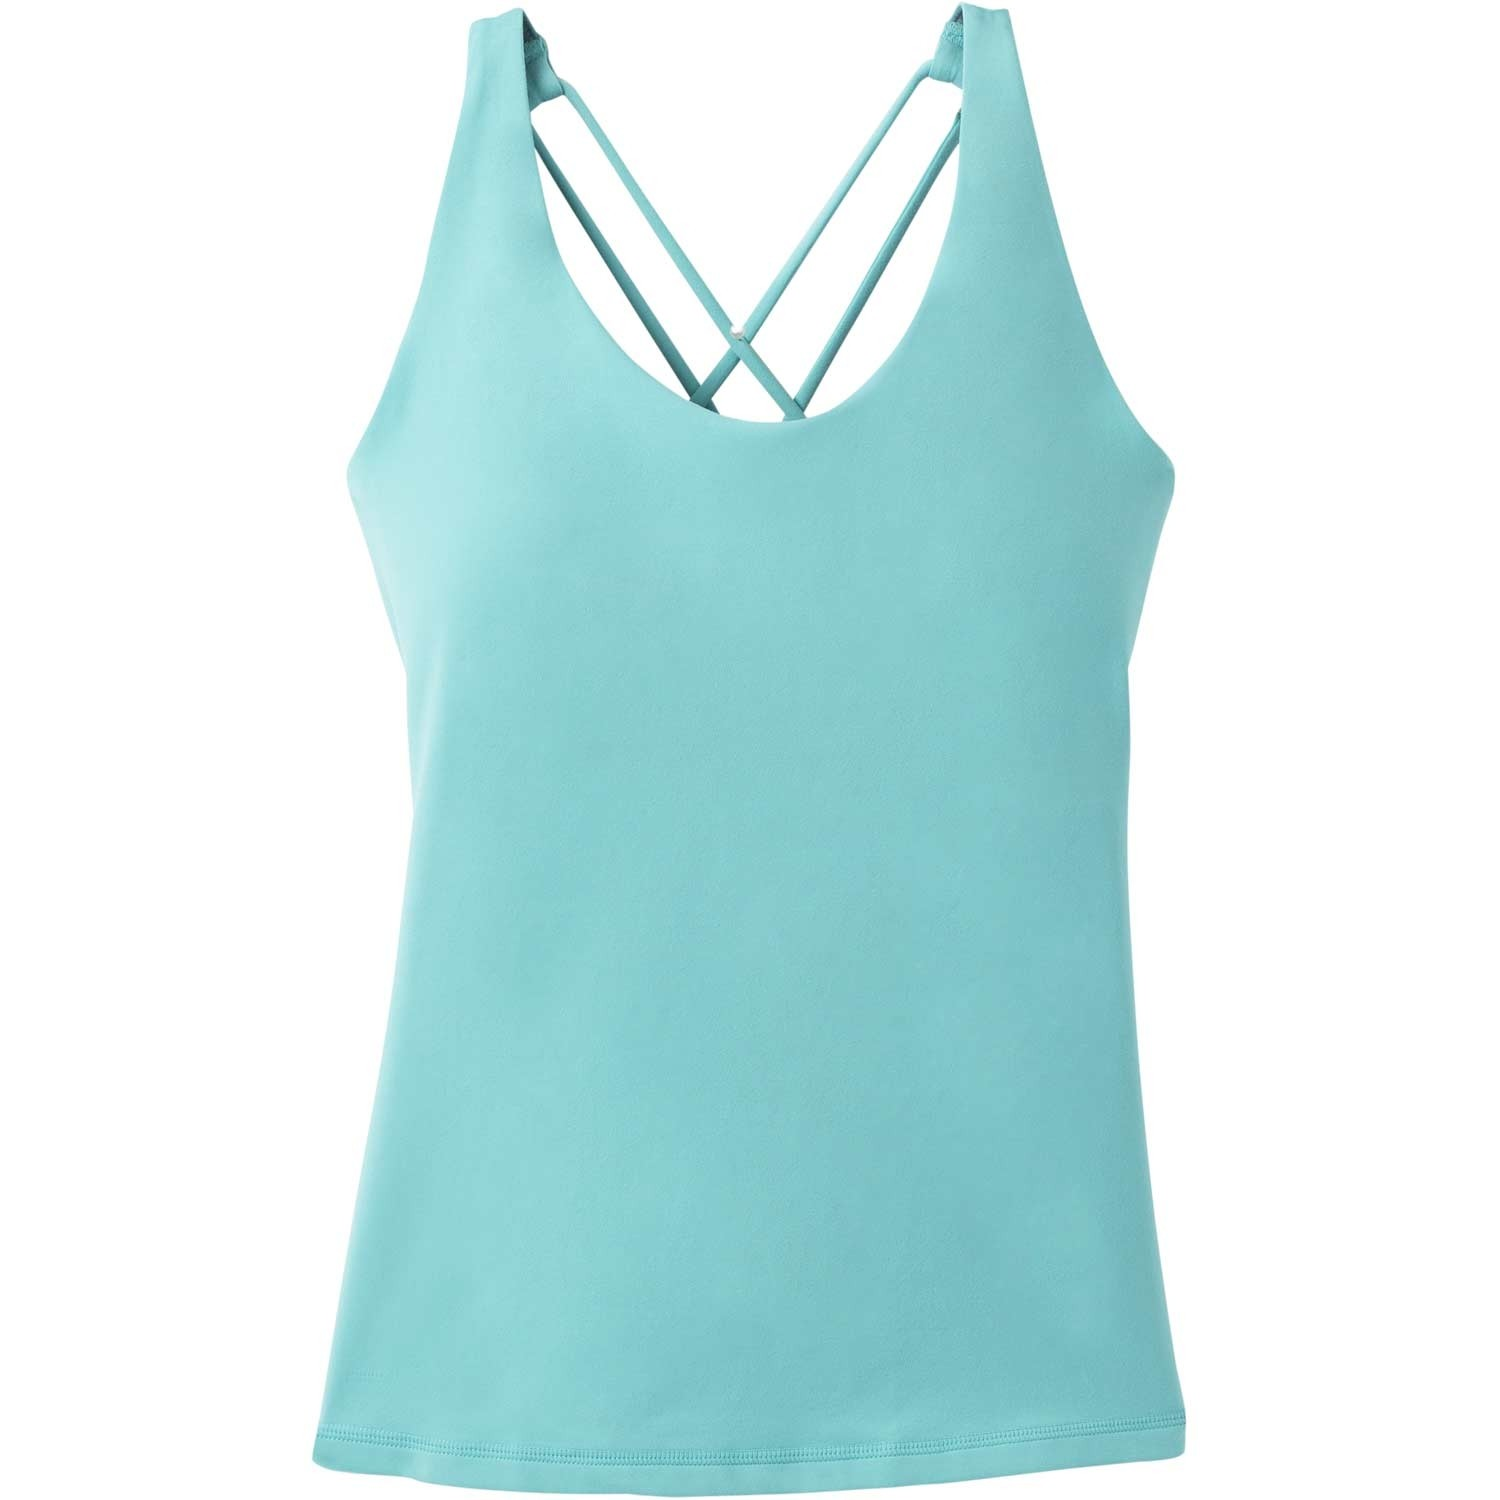 Prana Everyday Top - Women's - Light Azurite